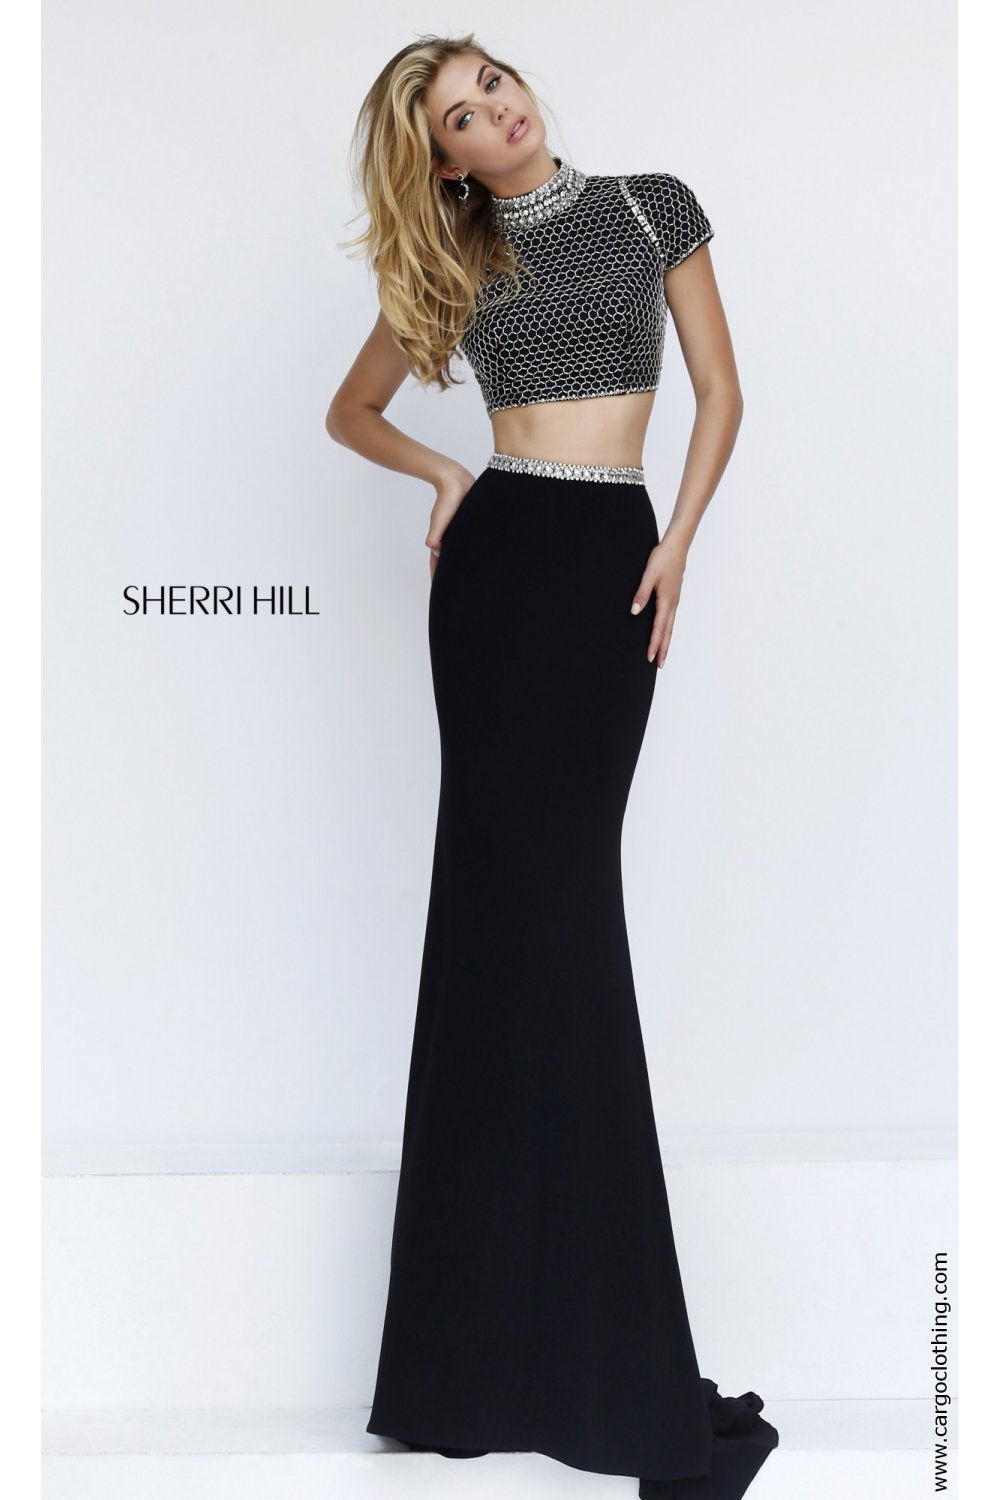 Sherri Hill dresses at Cargo Clothing, the 32303 two piece gown.